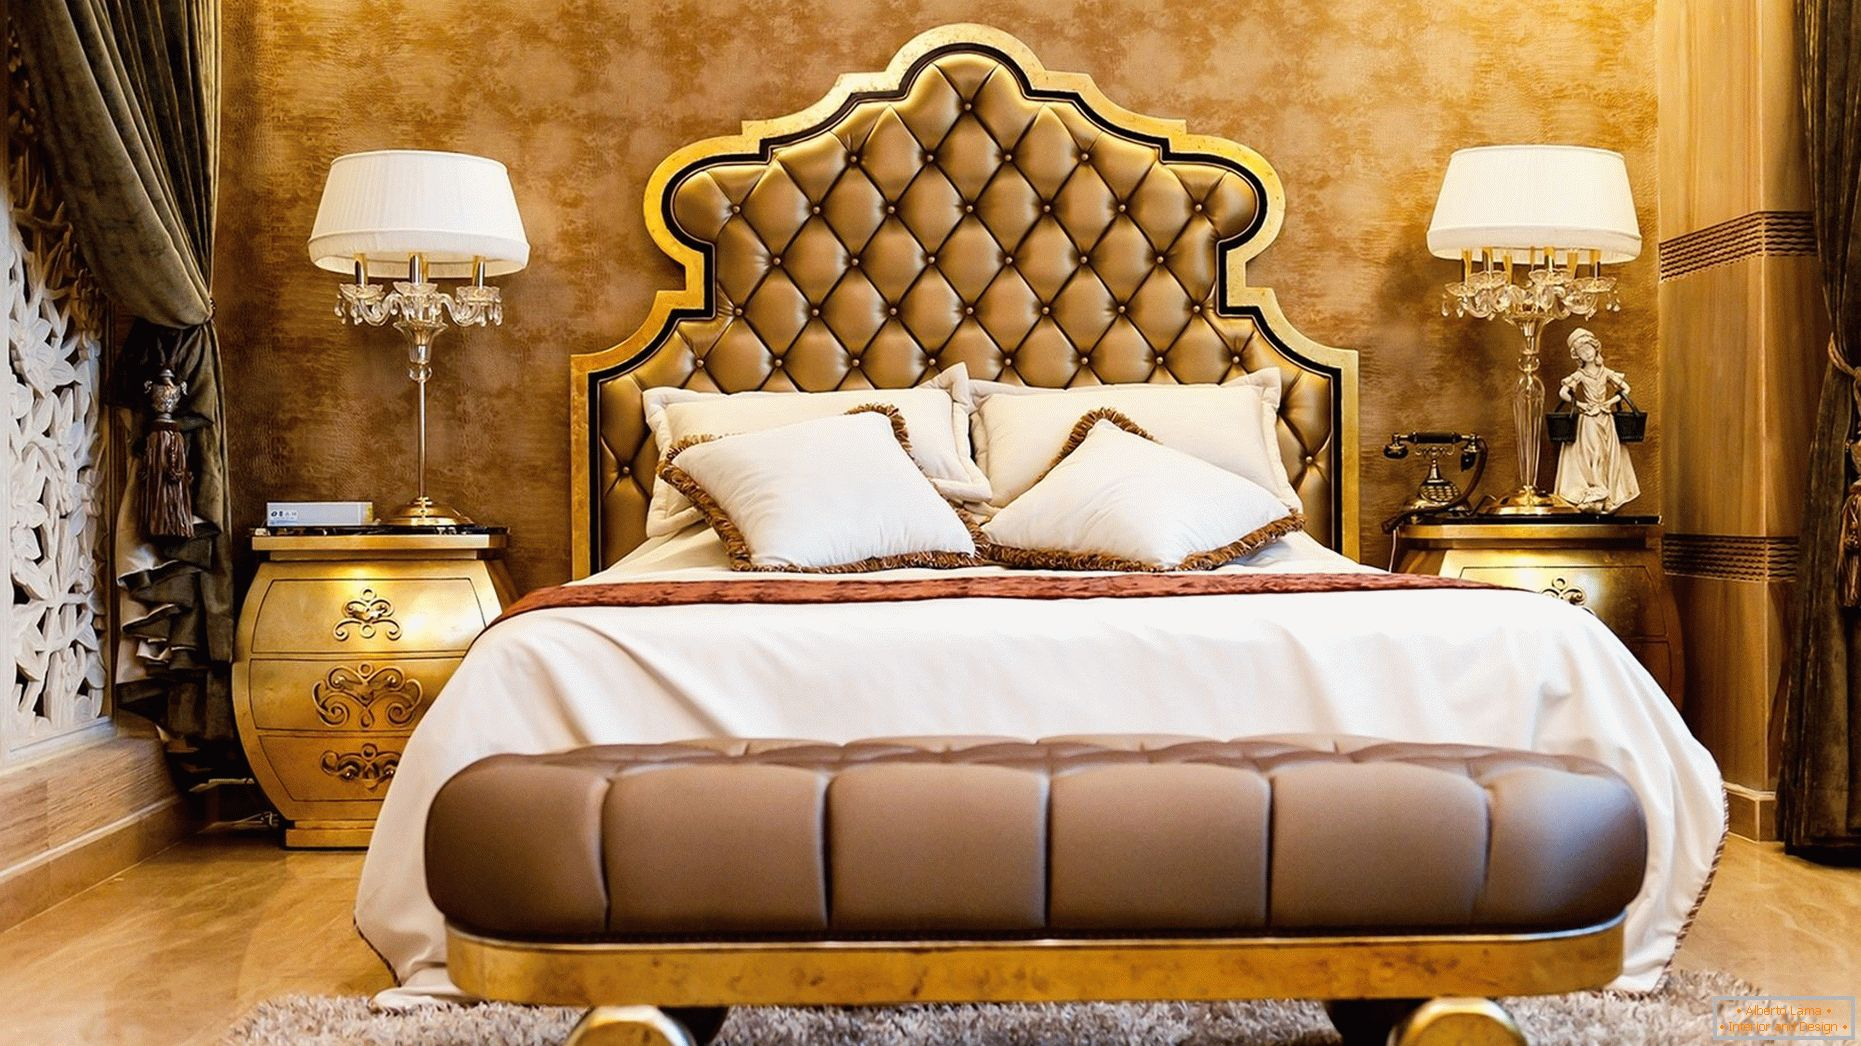 Gold wallpaper in the design of rooms